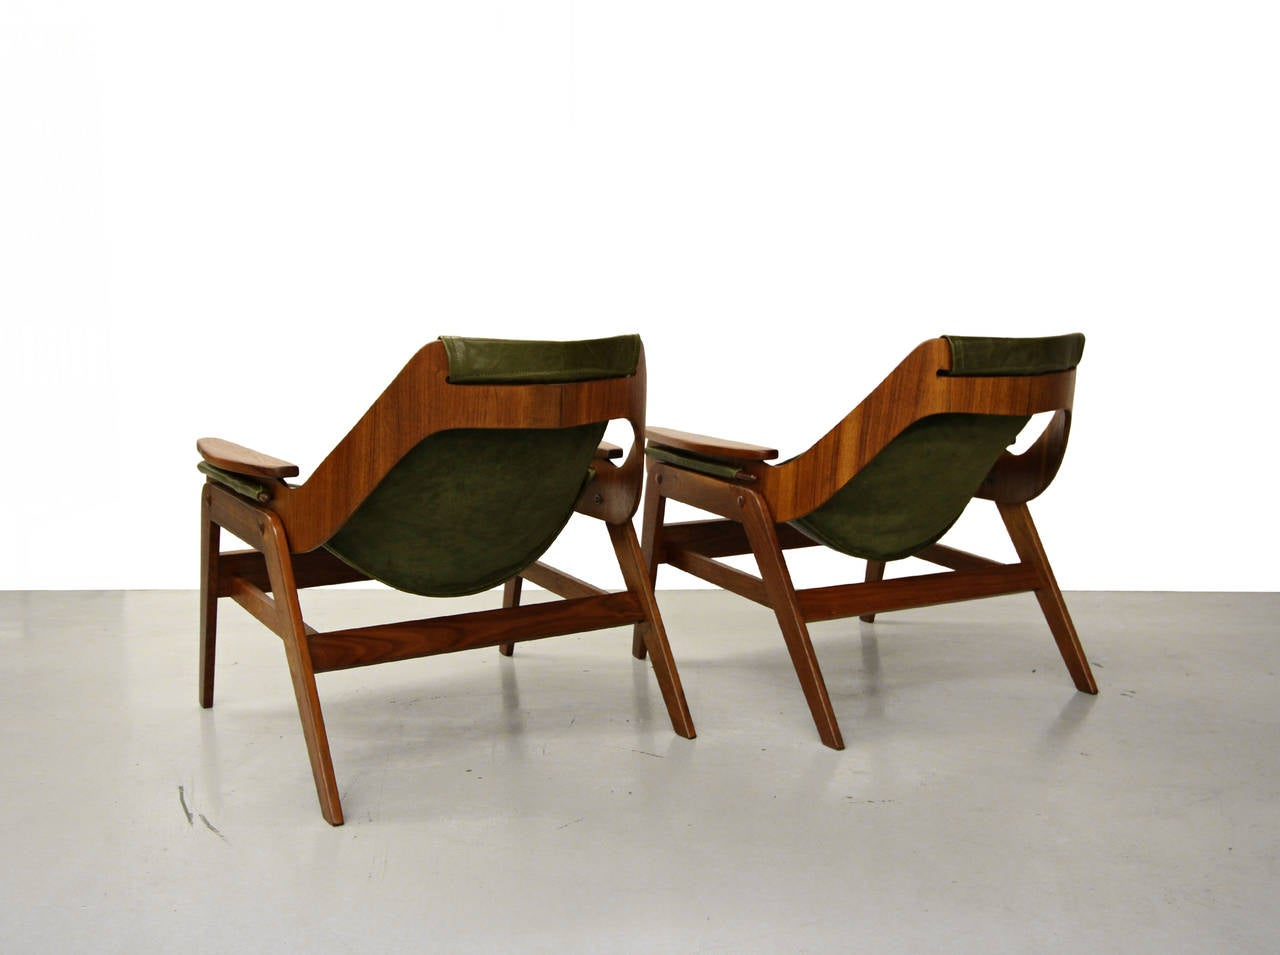 Pair Of Midcentury Walnut And Leather Sling Chairs By